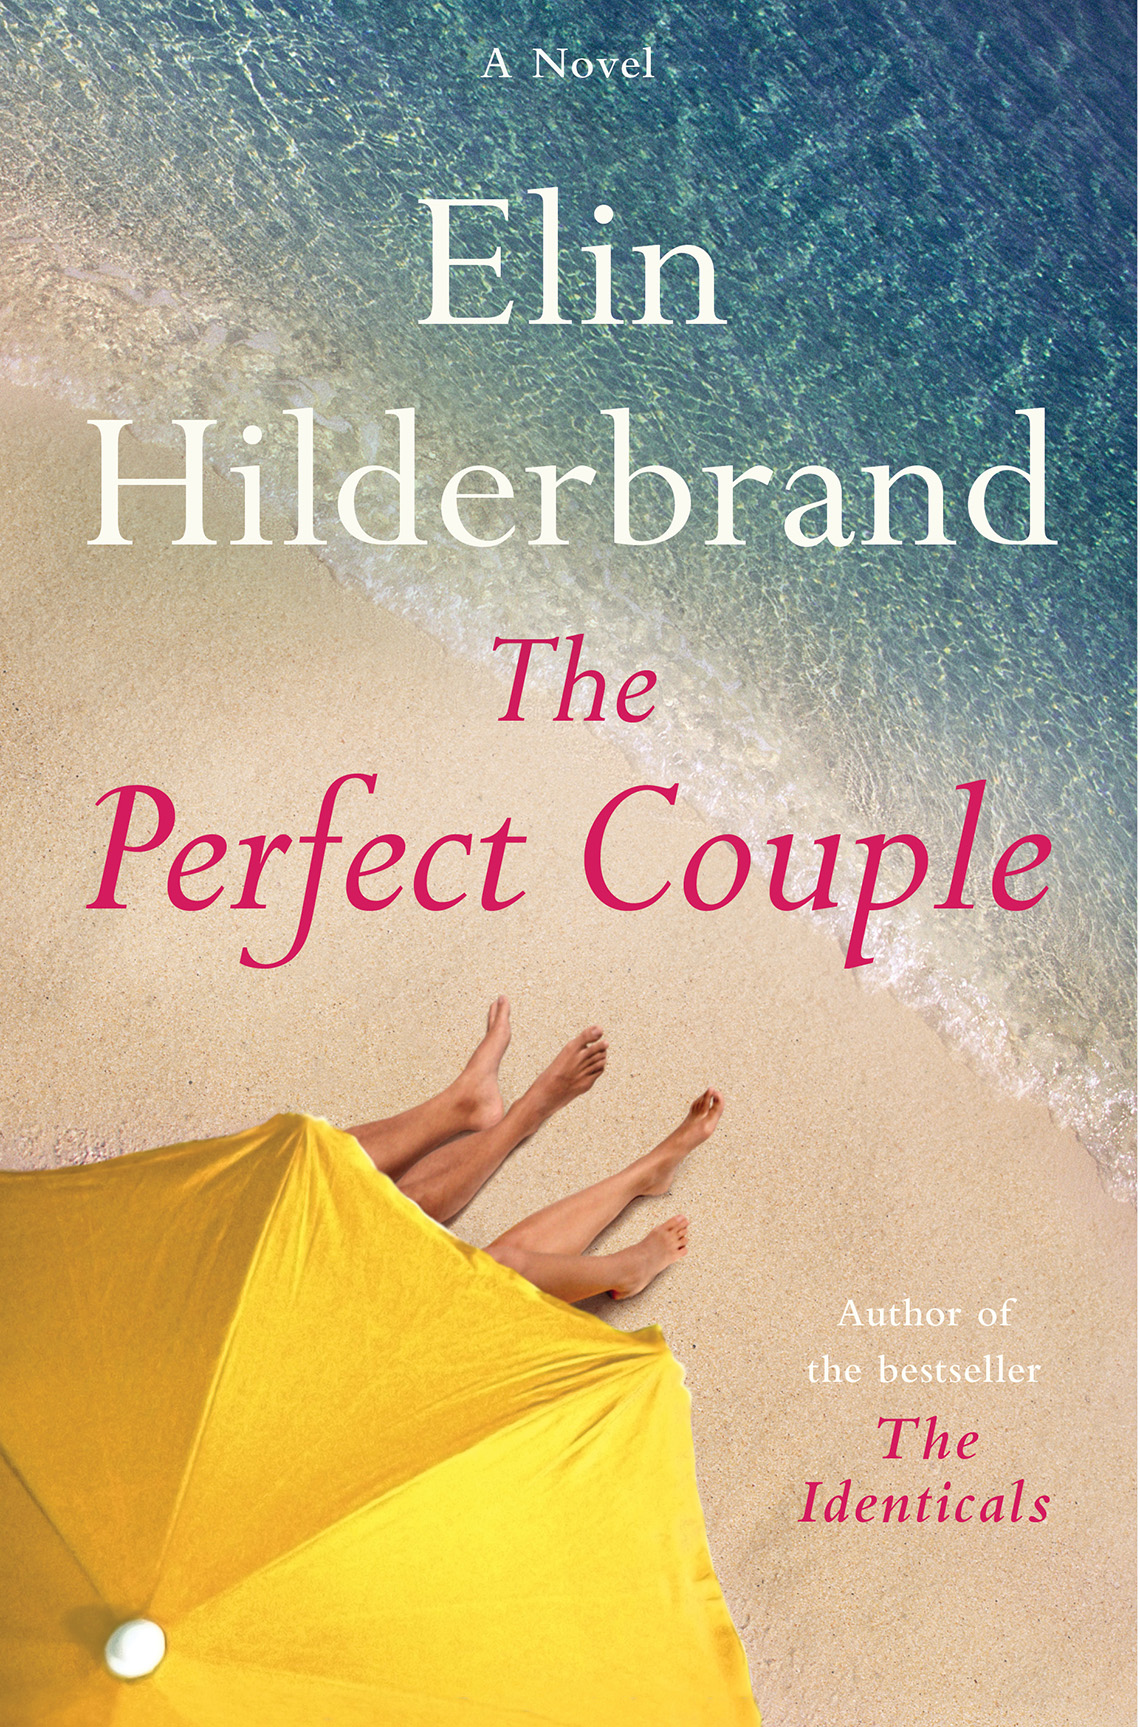 book cover, text reads: A Novel, Elin Hilderbrand, The Perfect Couple